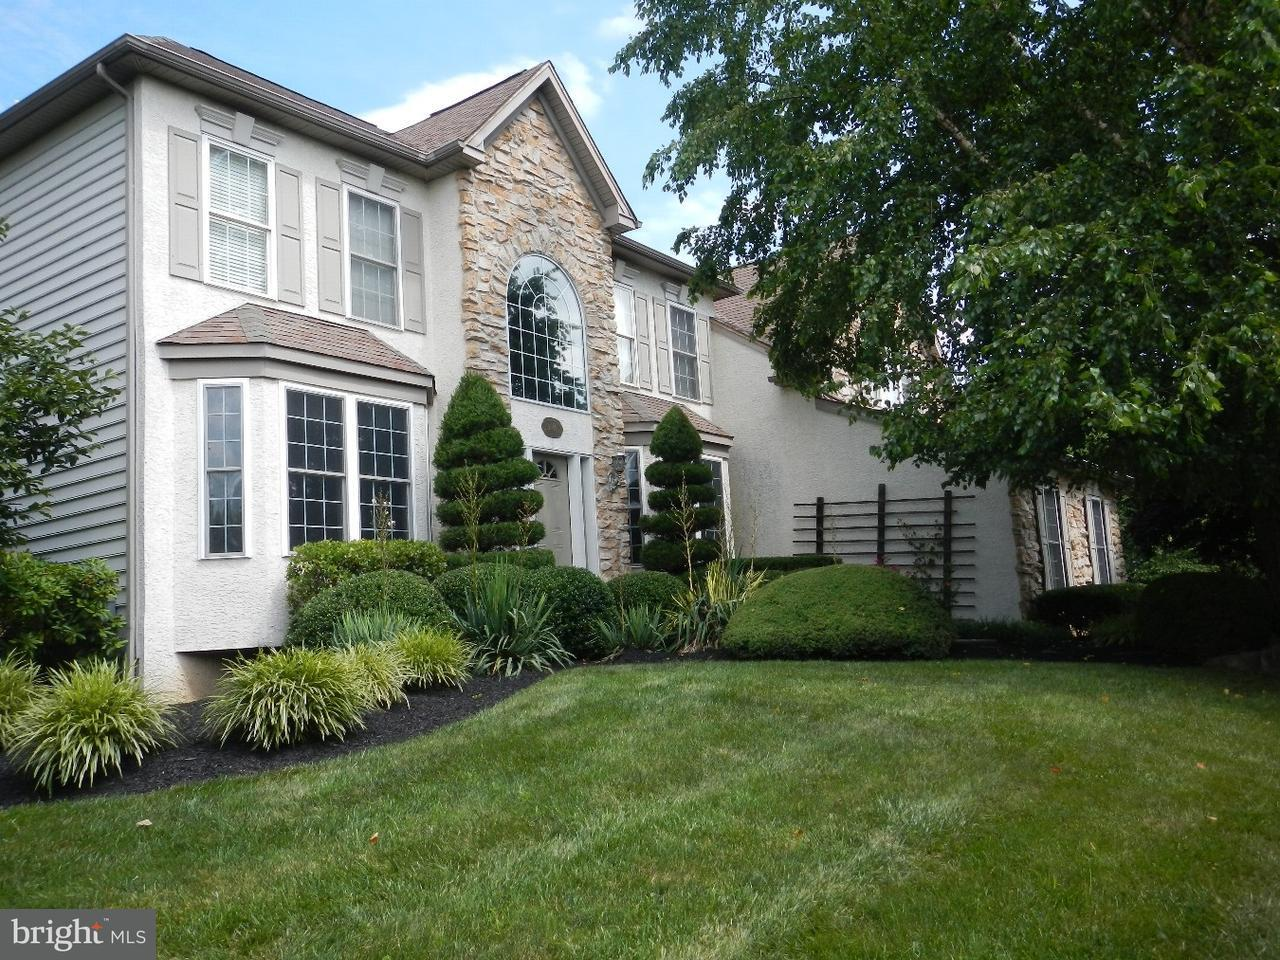 Single Family Home for Sale at 2560 CRESTLINE Drive Lansdale, Pennsylvania 19446 United States